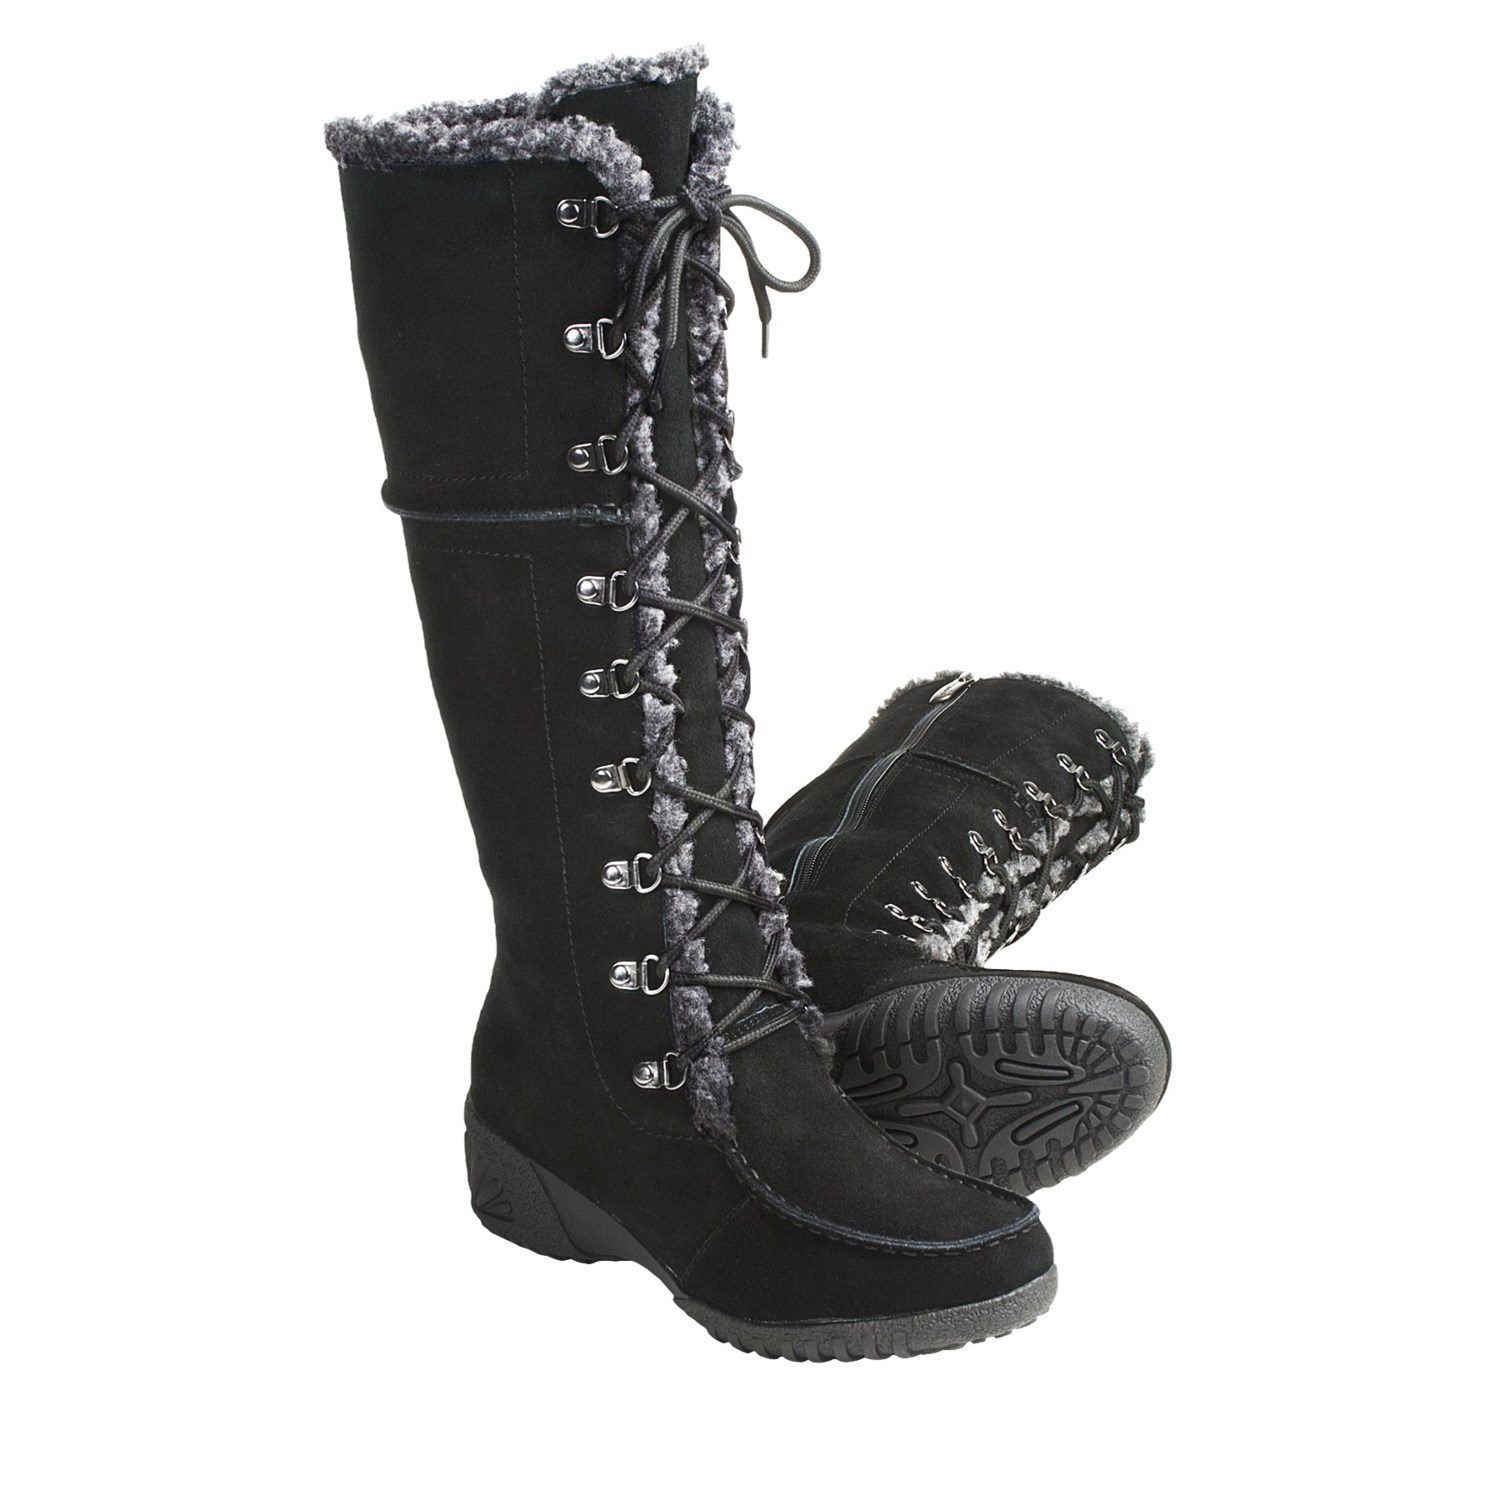 Khombu Saturn Lace Winter Boots For Women 3692t Save 35